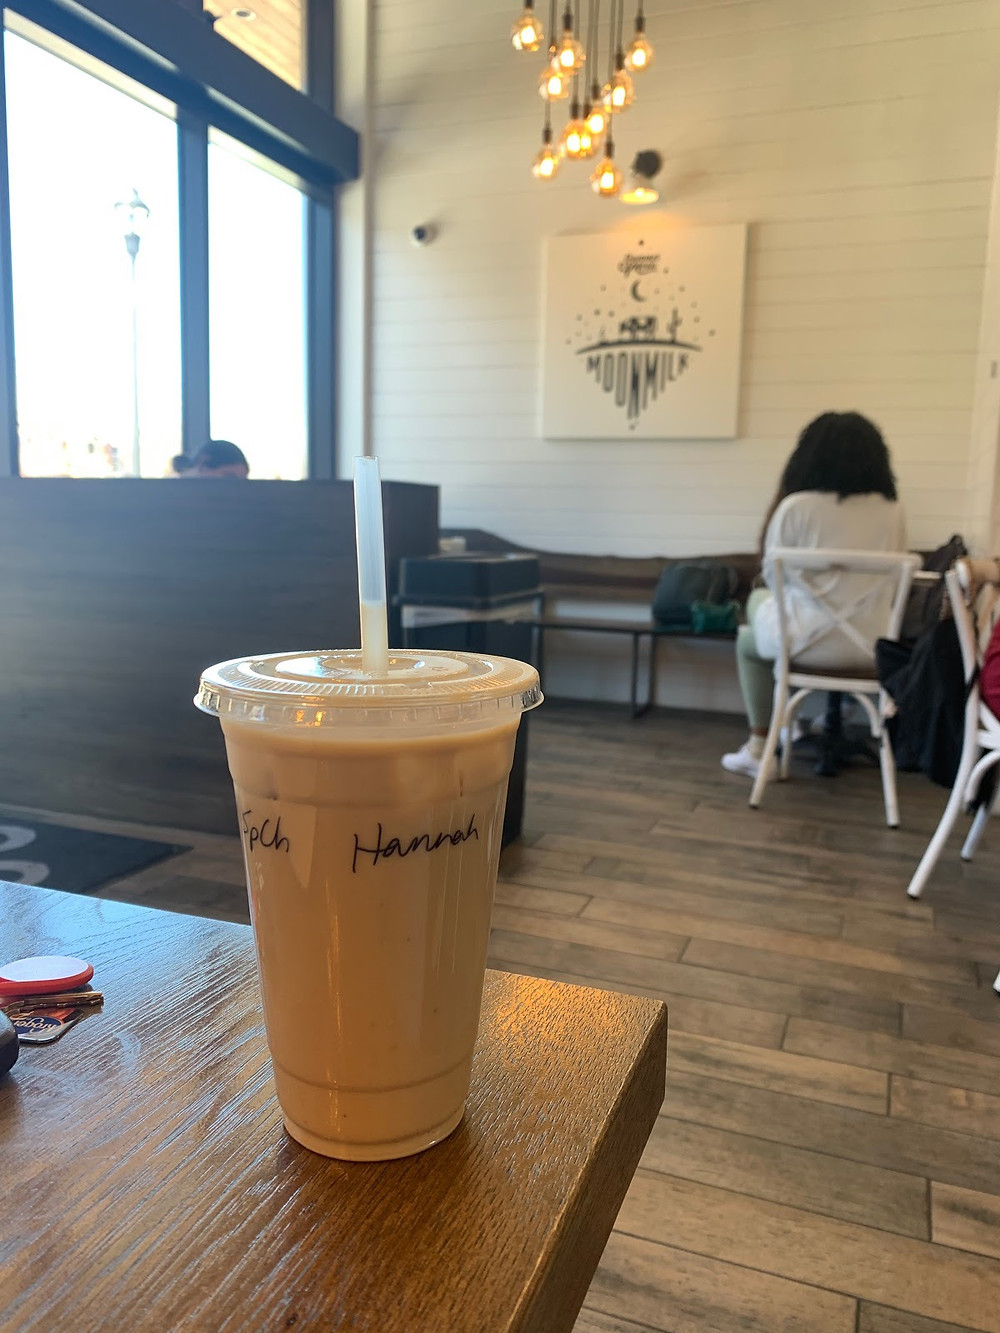 A picture of an iced coffee sitting on a table.